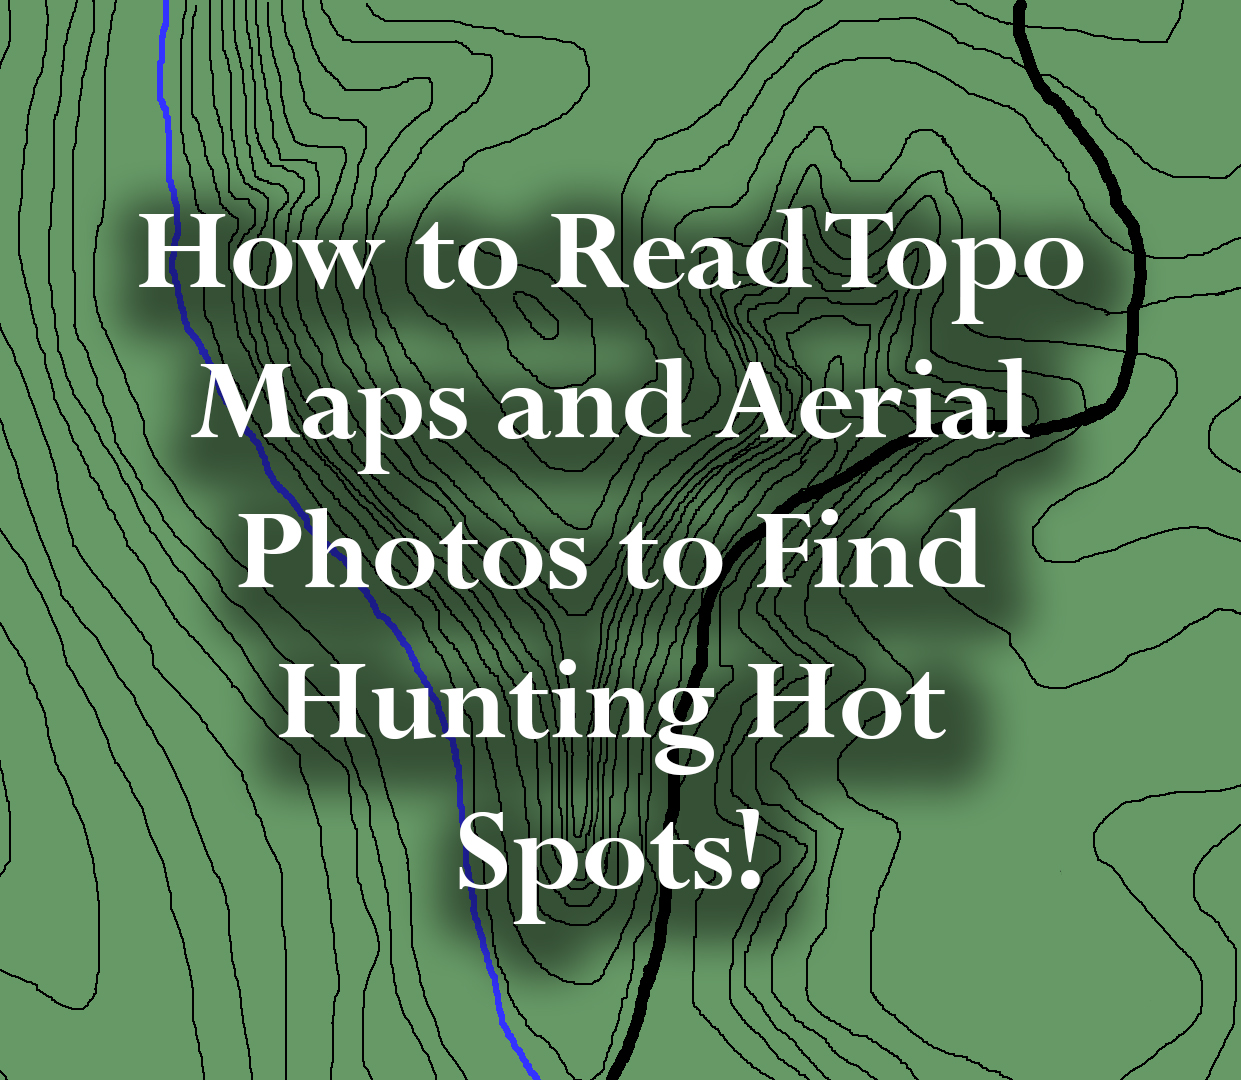 How To Read Topo Maps And Aerial Photos To Find Hunting Hot Spots - Hunting aerial maps